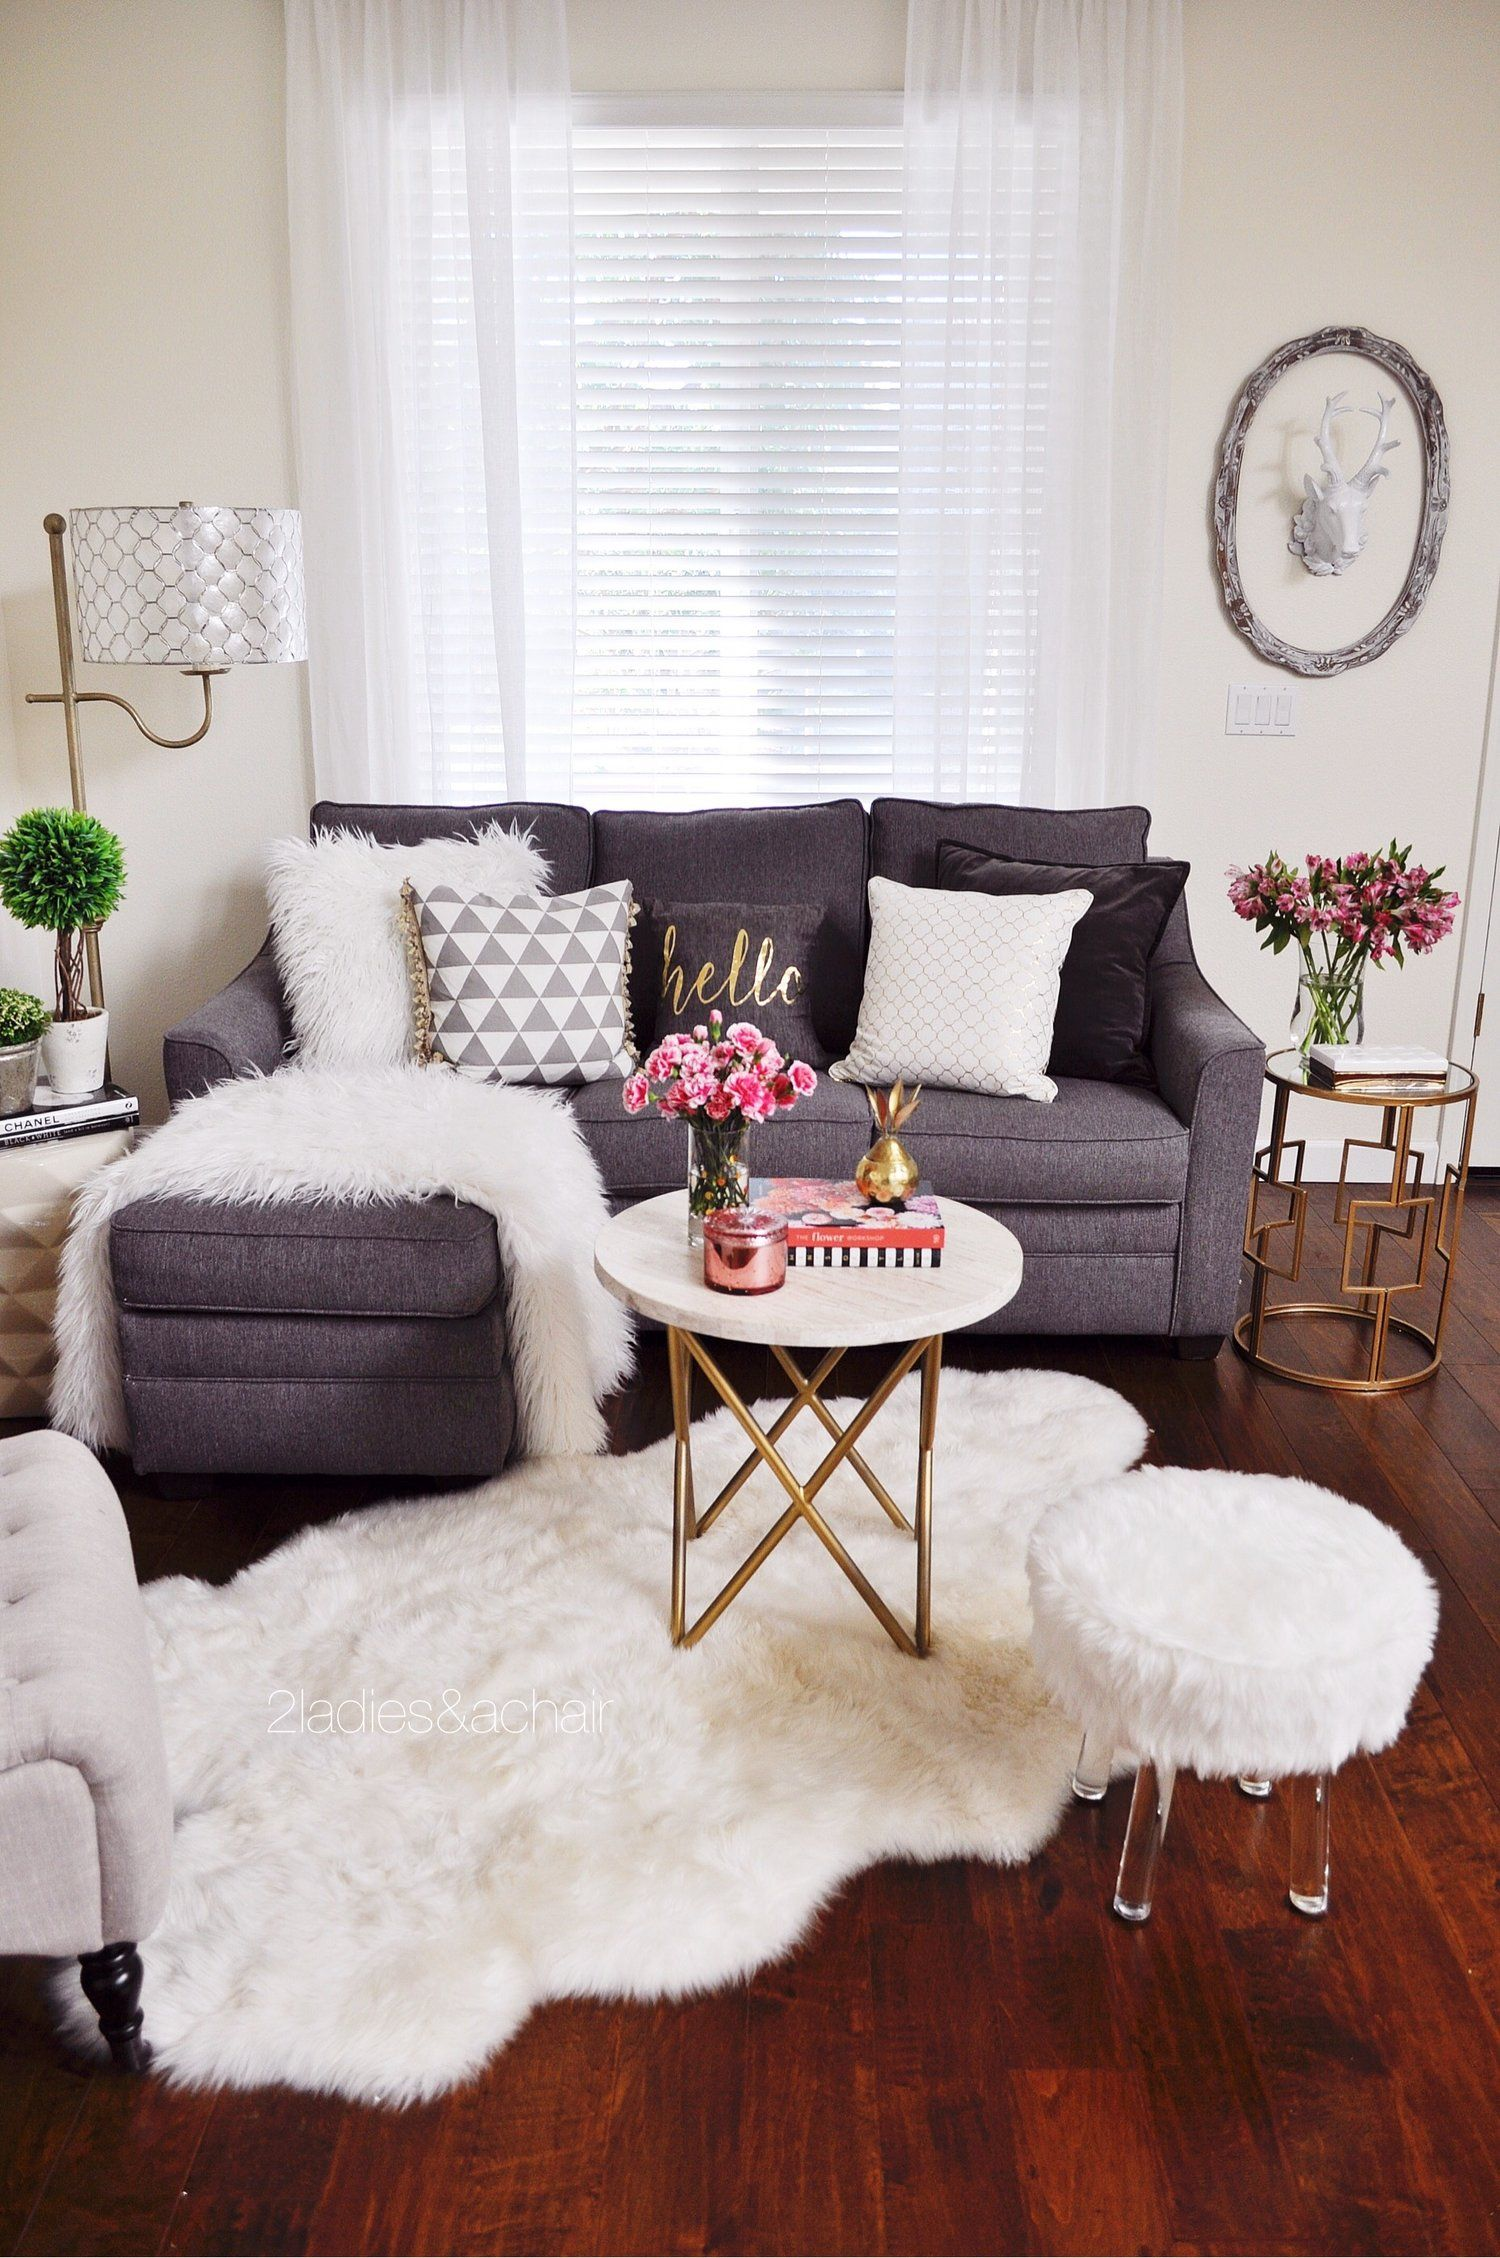 light, bright, and cozy decor transitions from the holiday